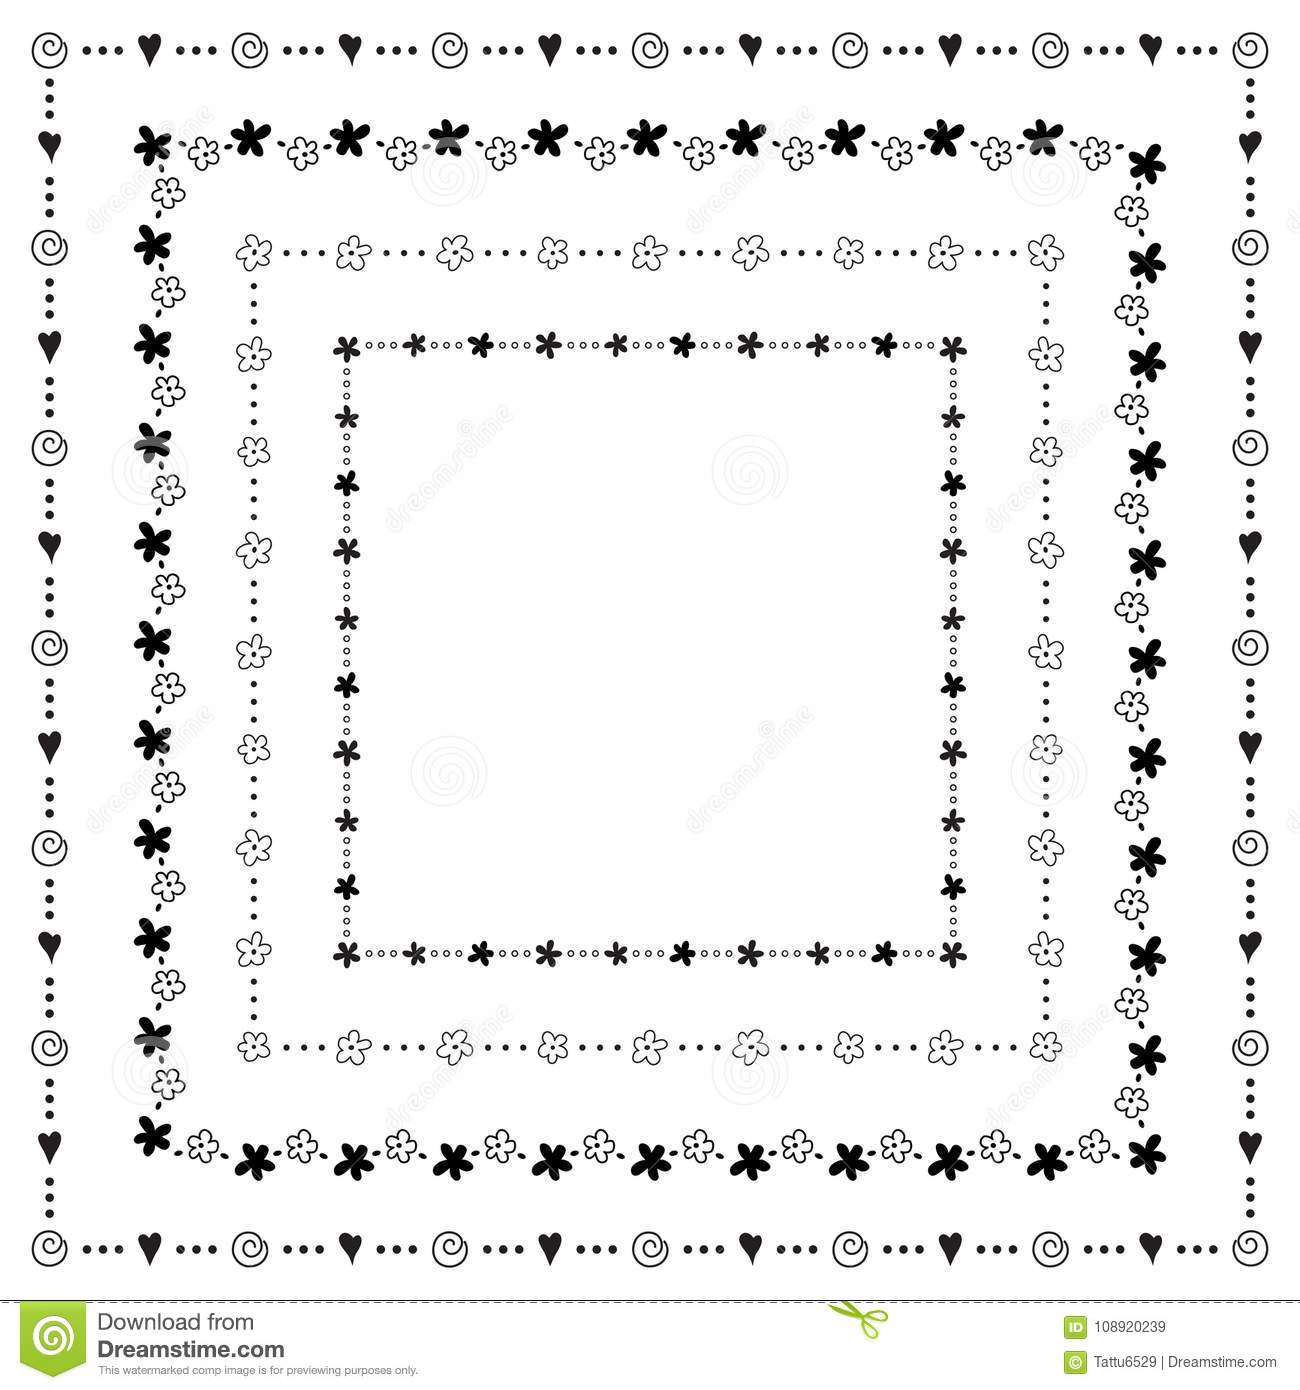 Fun square frames stock vector. Illustration of backgrounds - 108920239